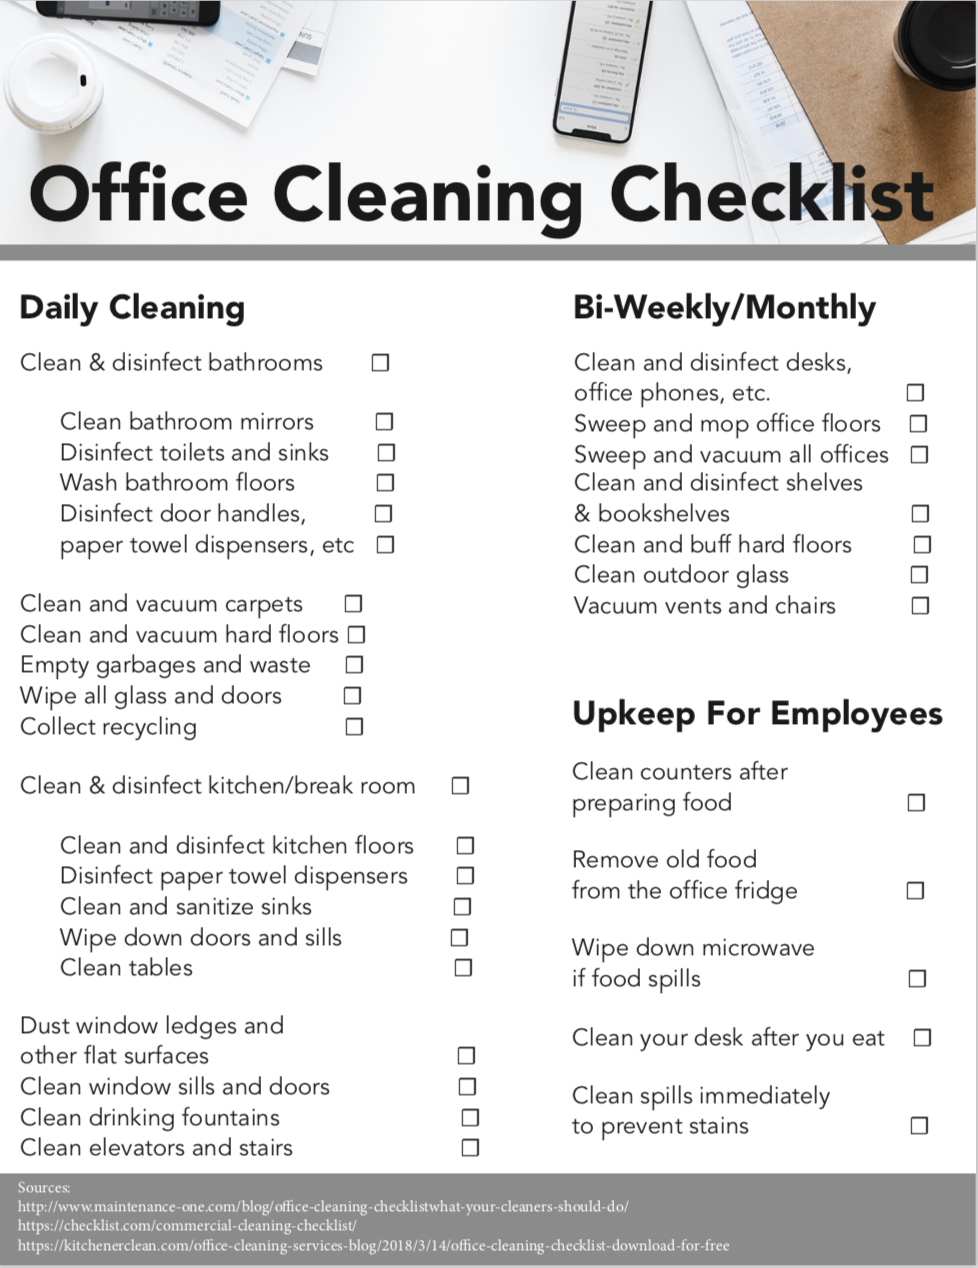 Office Cleaning Checklist - Download for Free — Kitchener Clean